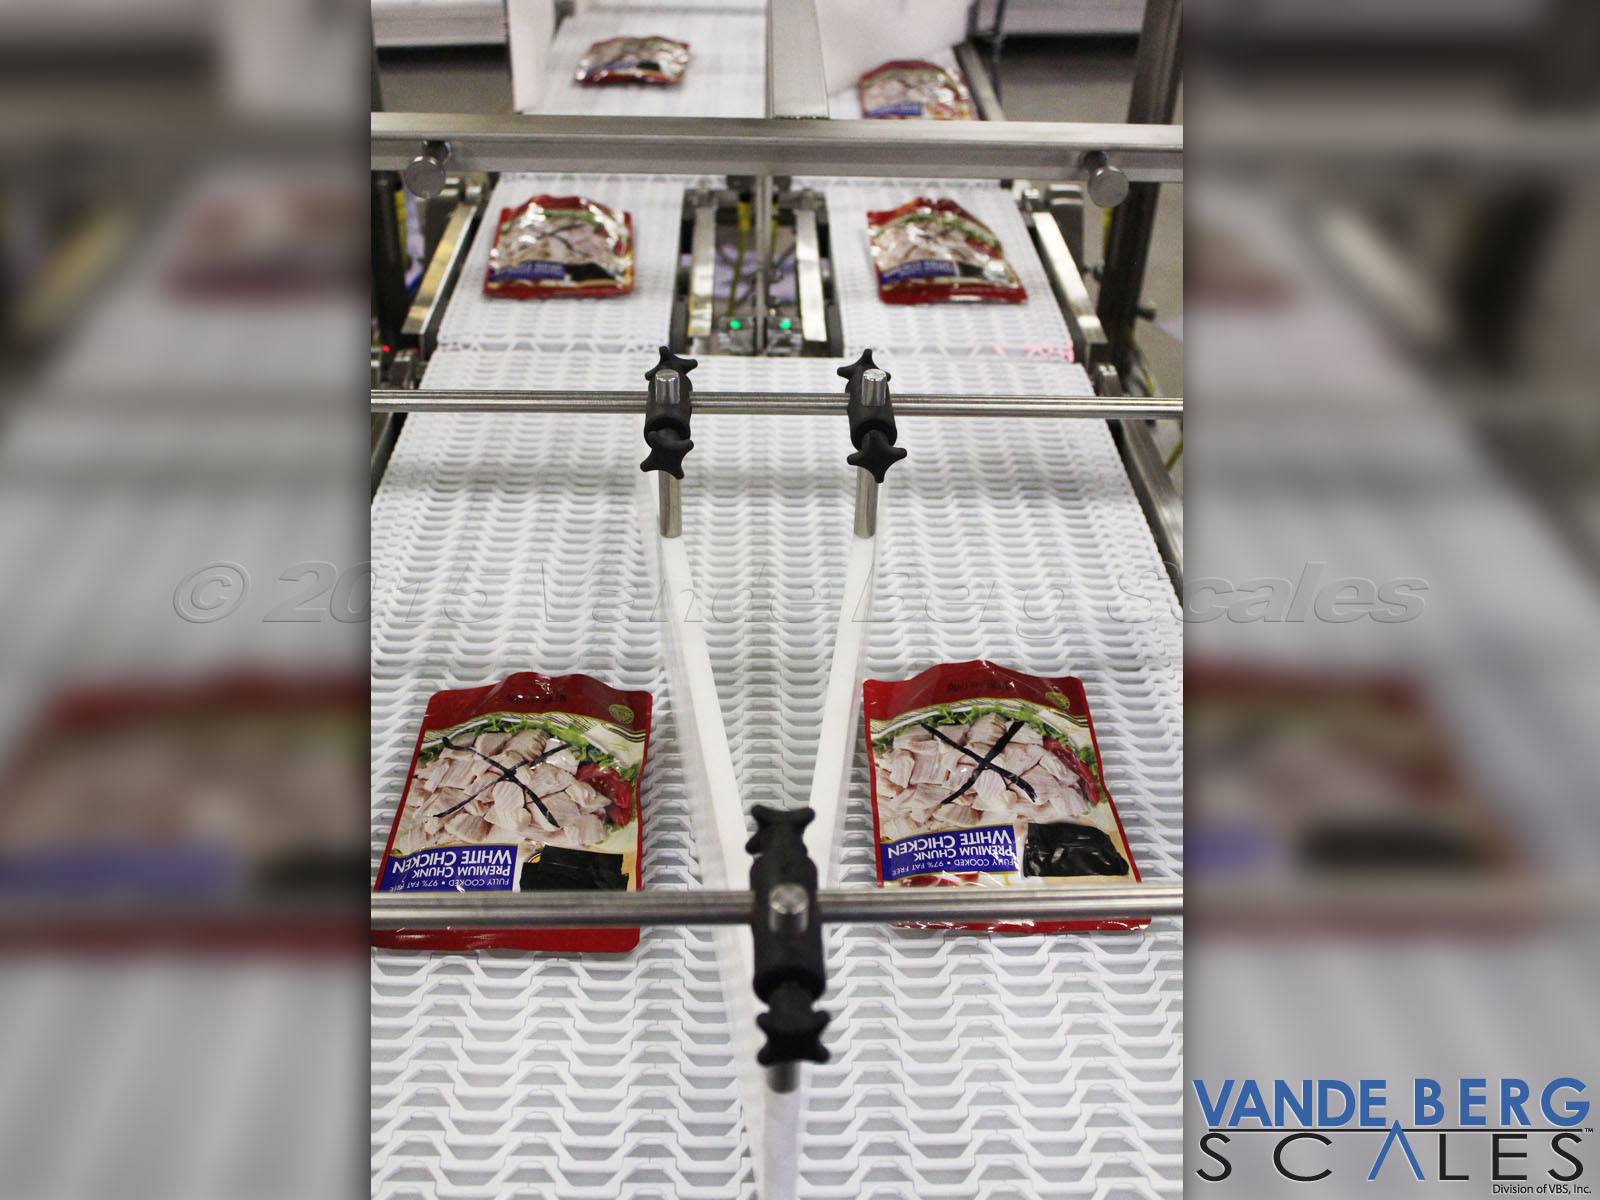 Product guides ensure products are centered properly on the belt for consistent/accurate weighment.